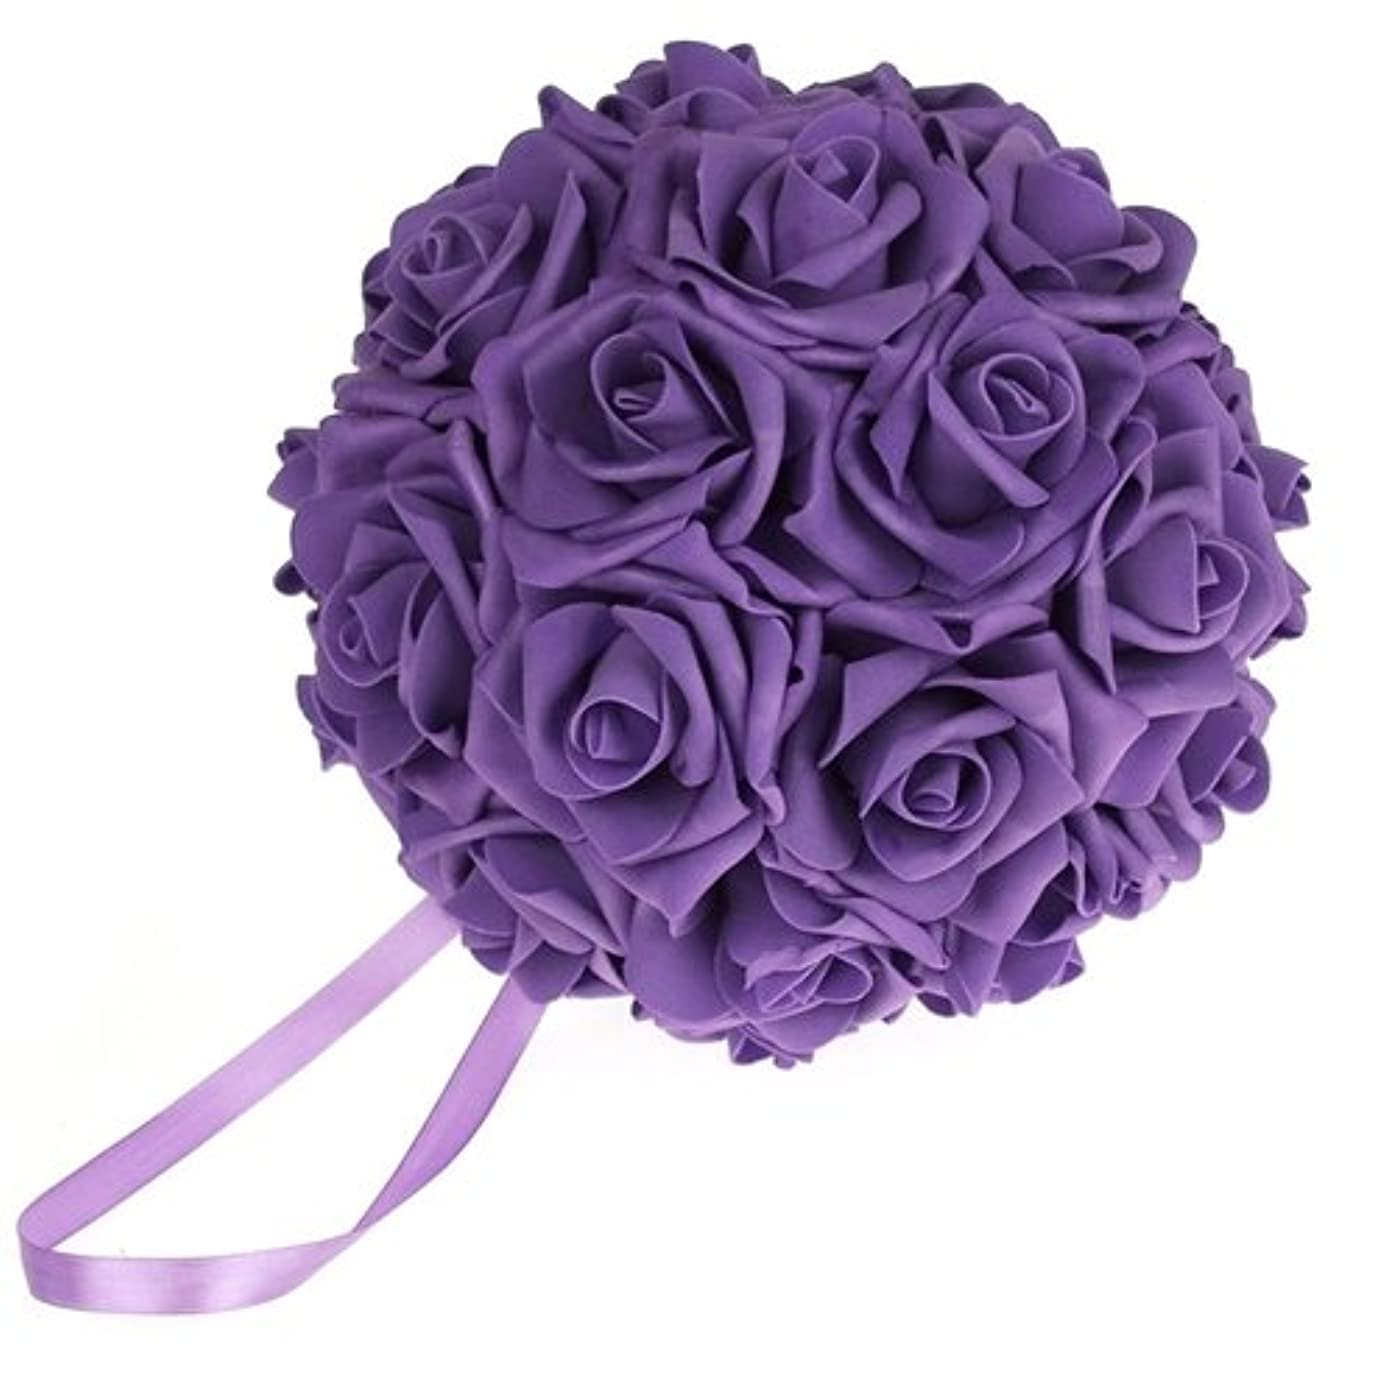 Homeford Firefly Imports Soft Touch Foam Kissing Ball Wedding Centerpiece, 7-Inch, Purple,